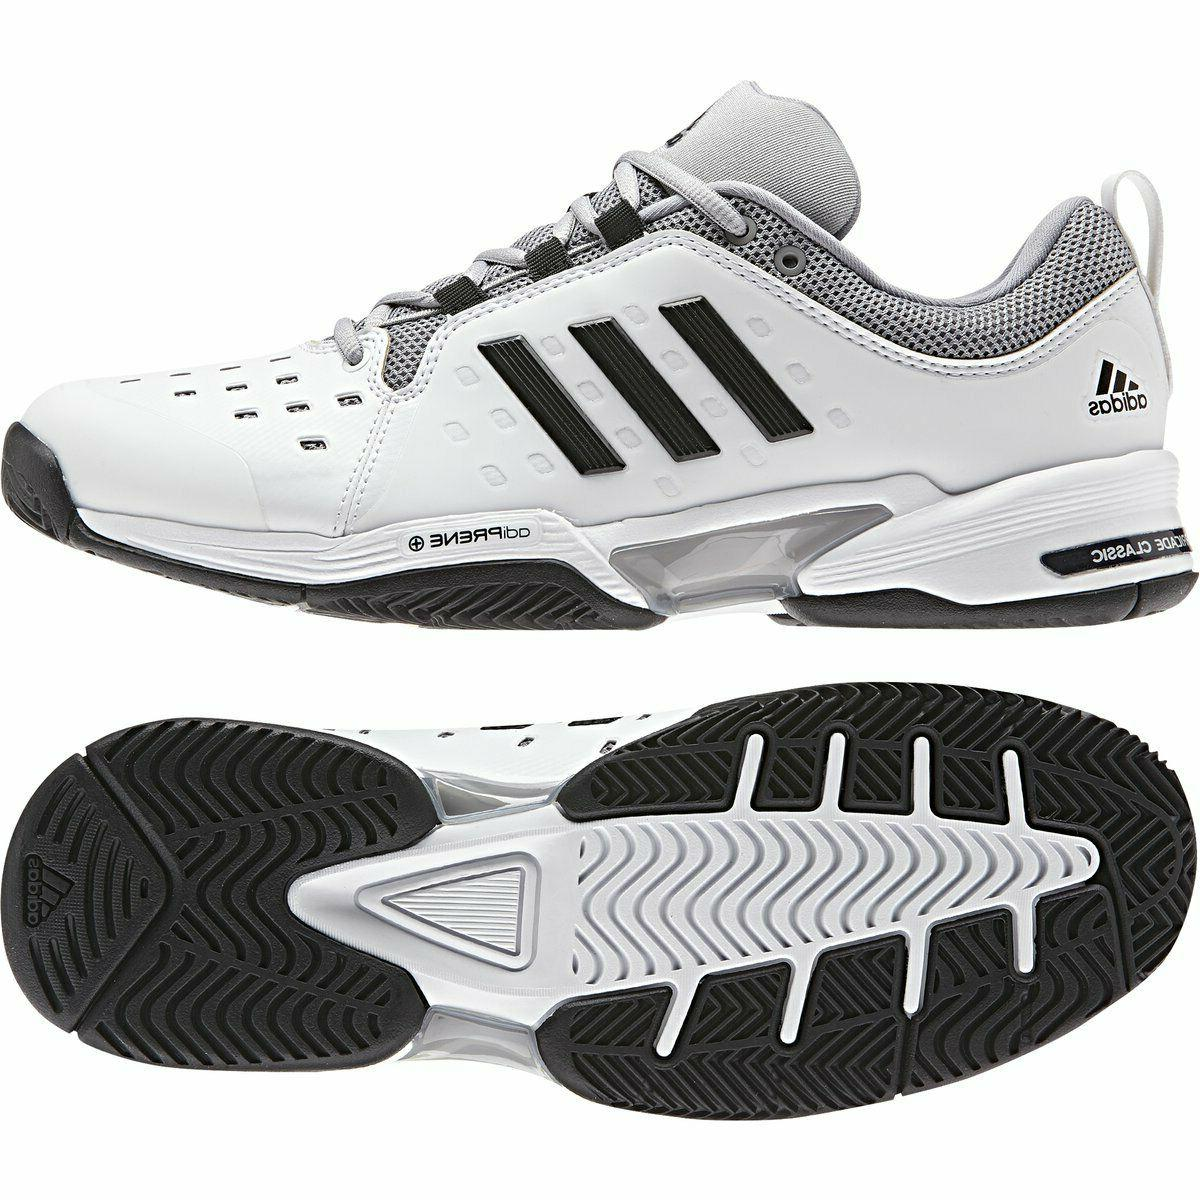 mens barricade classic wide athletic sport tennis